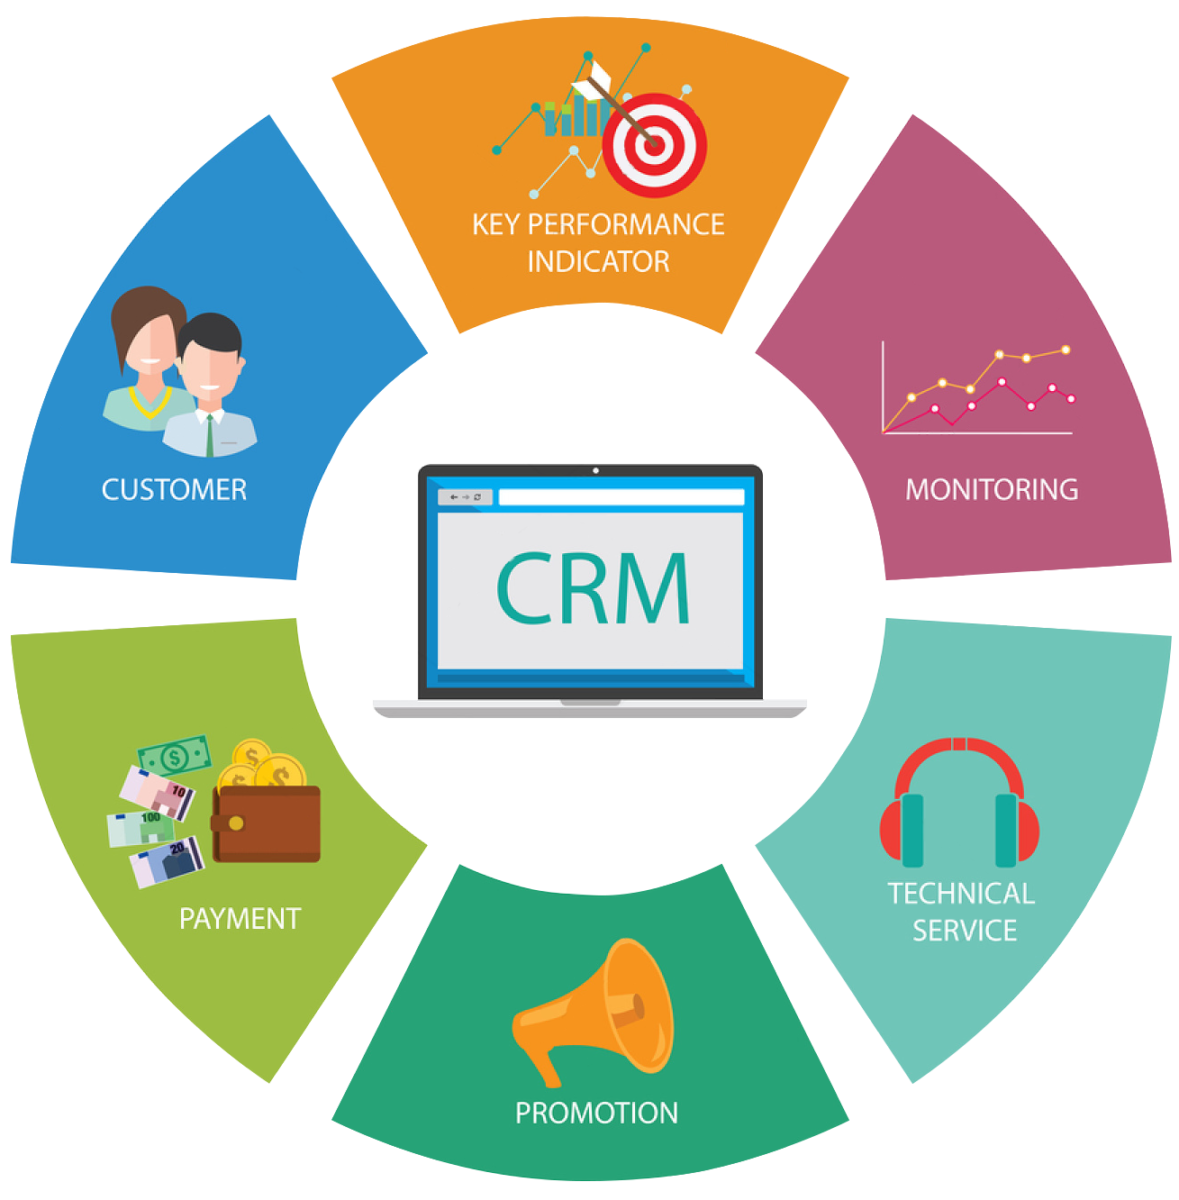 Crm Management Tools Are Very Necessary For Creating Completing